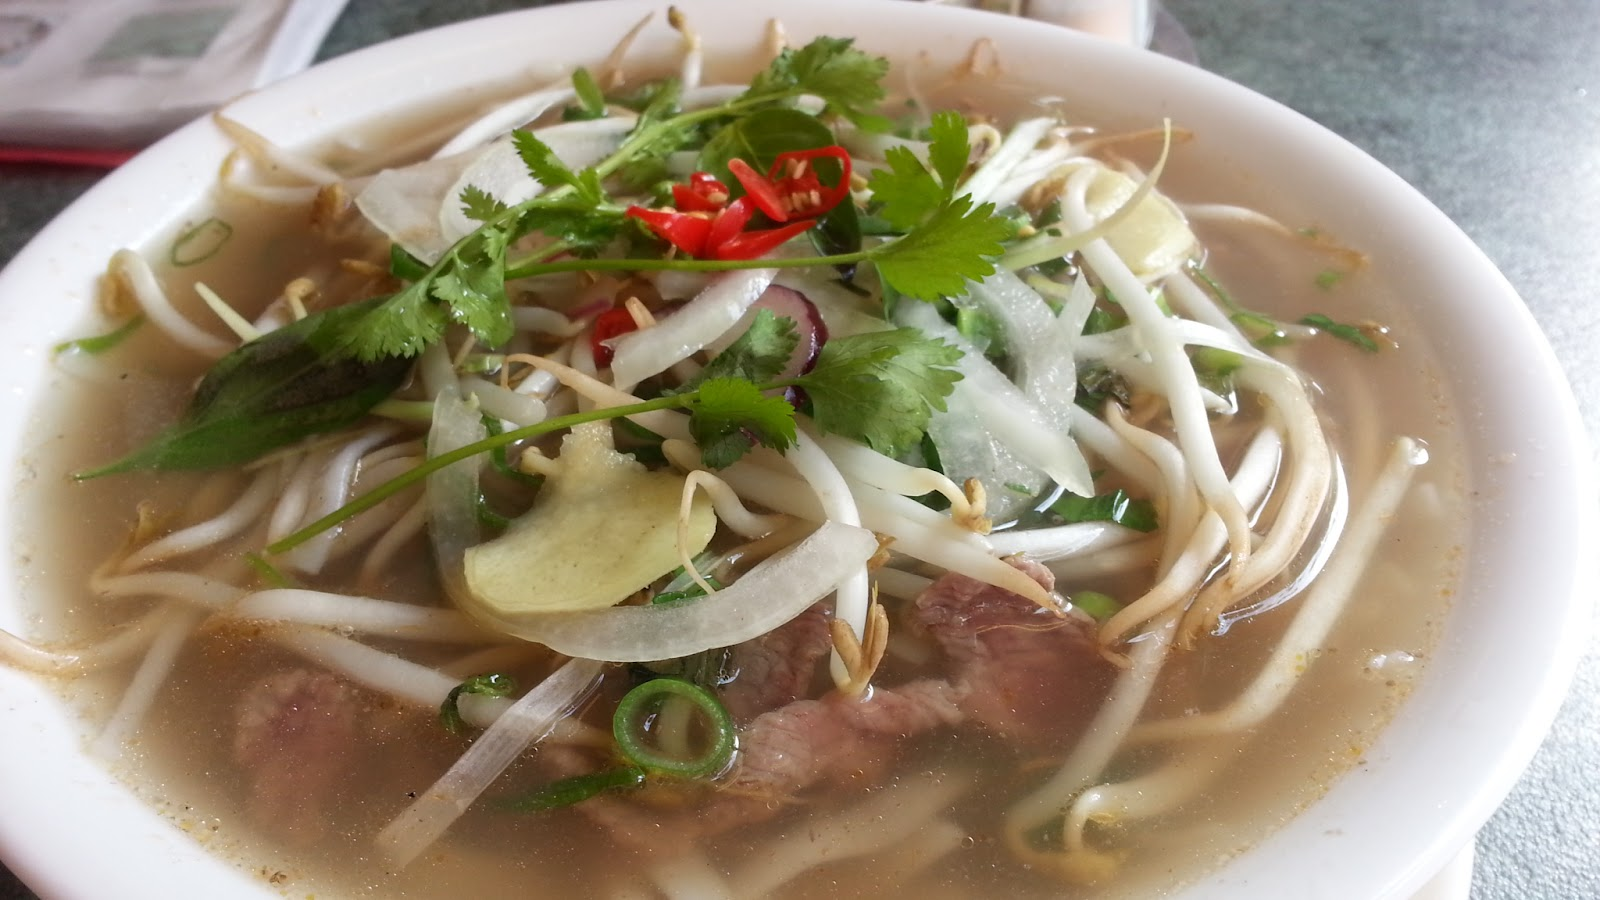 Best Vietnamese Restaurant In Wichita Ks